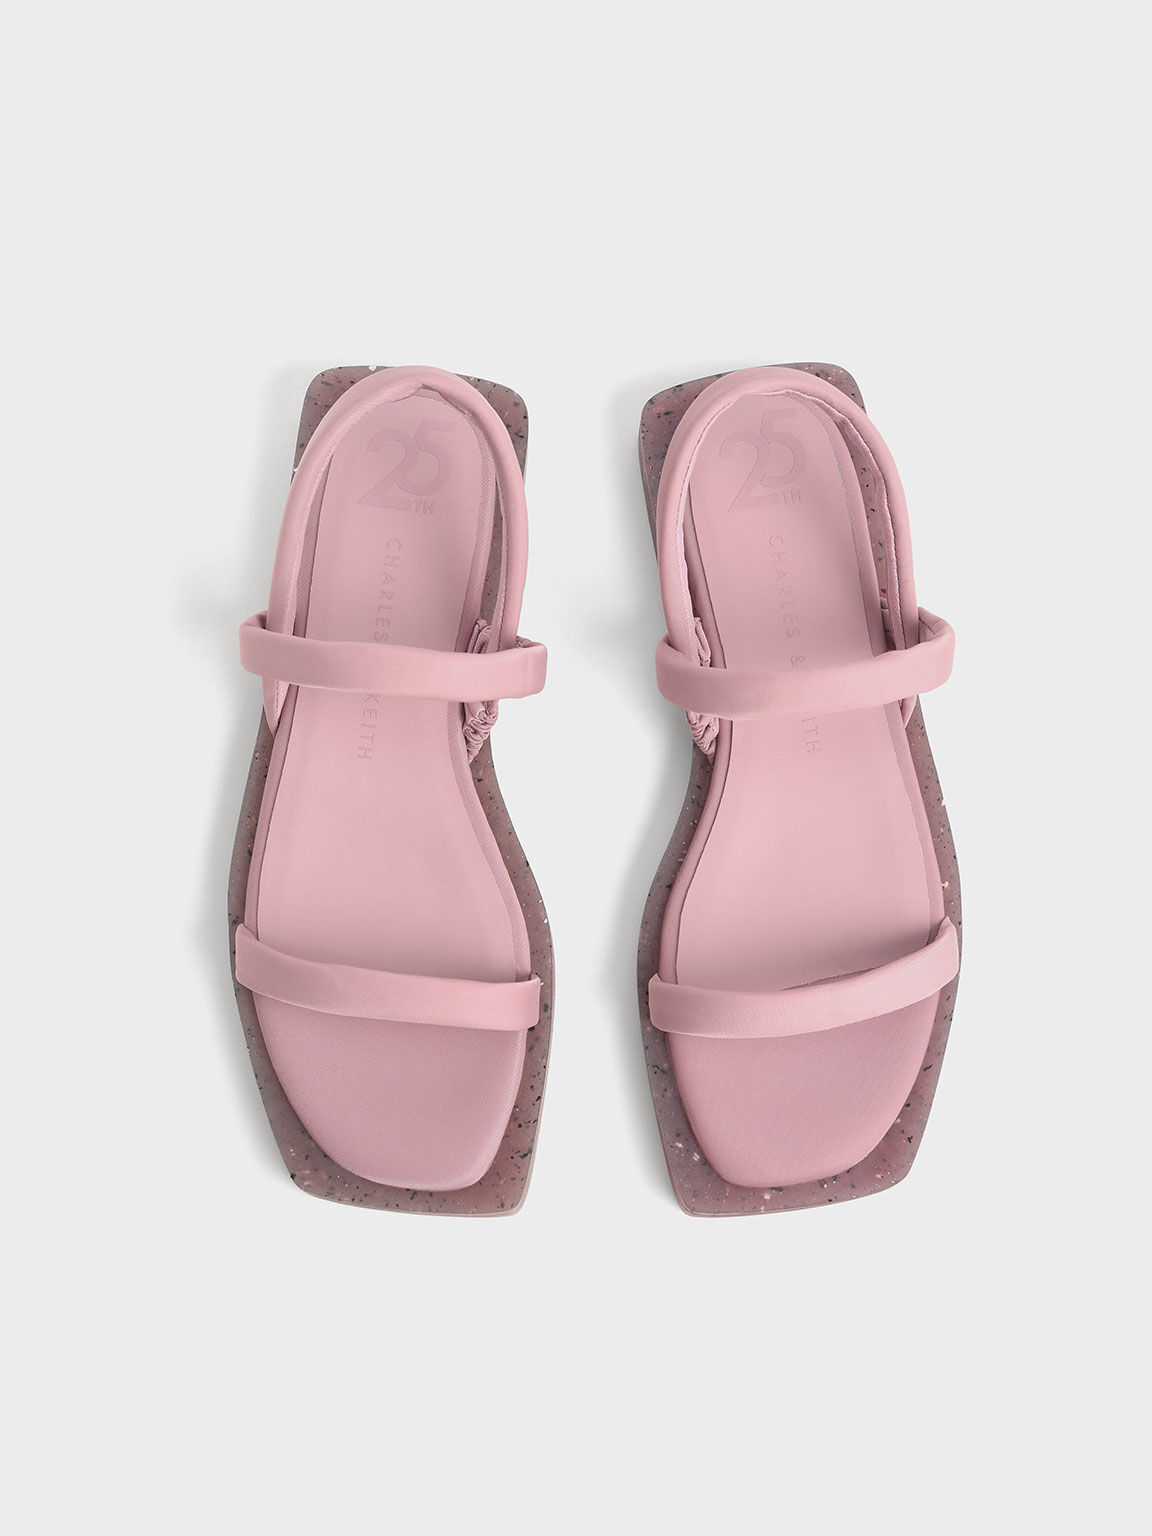 The Anniversary Series: Arabella Recycled Nylon Slingback Sandals, Pink, hi-res